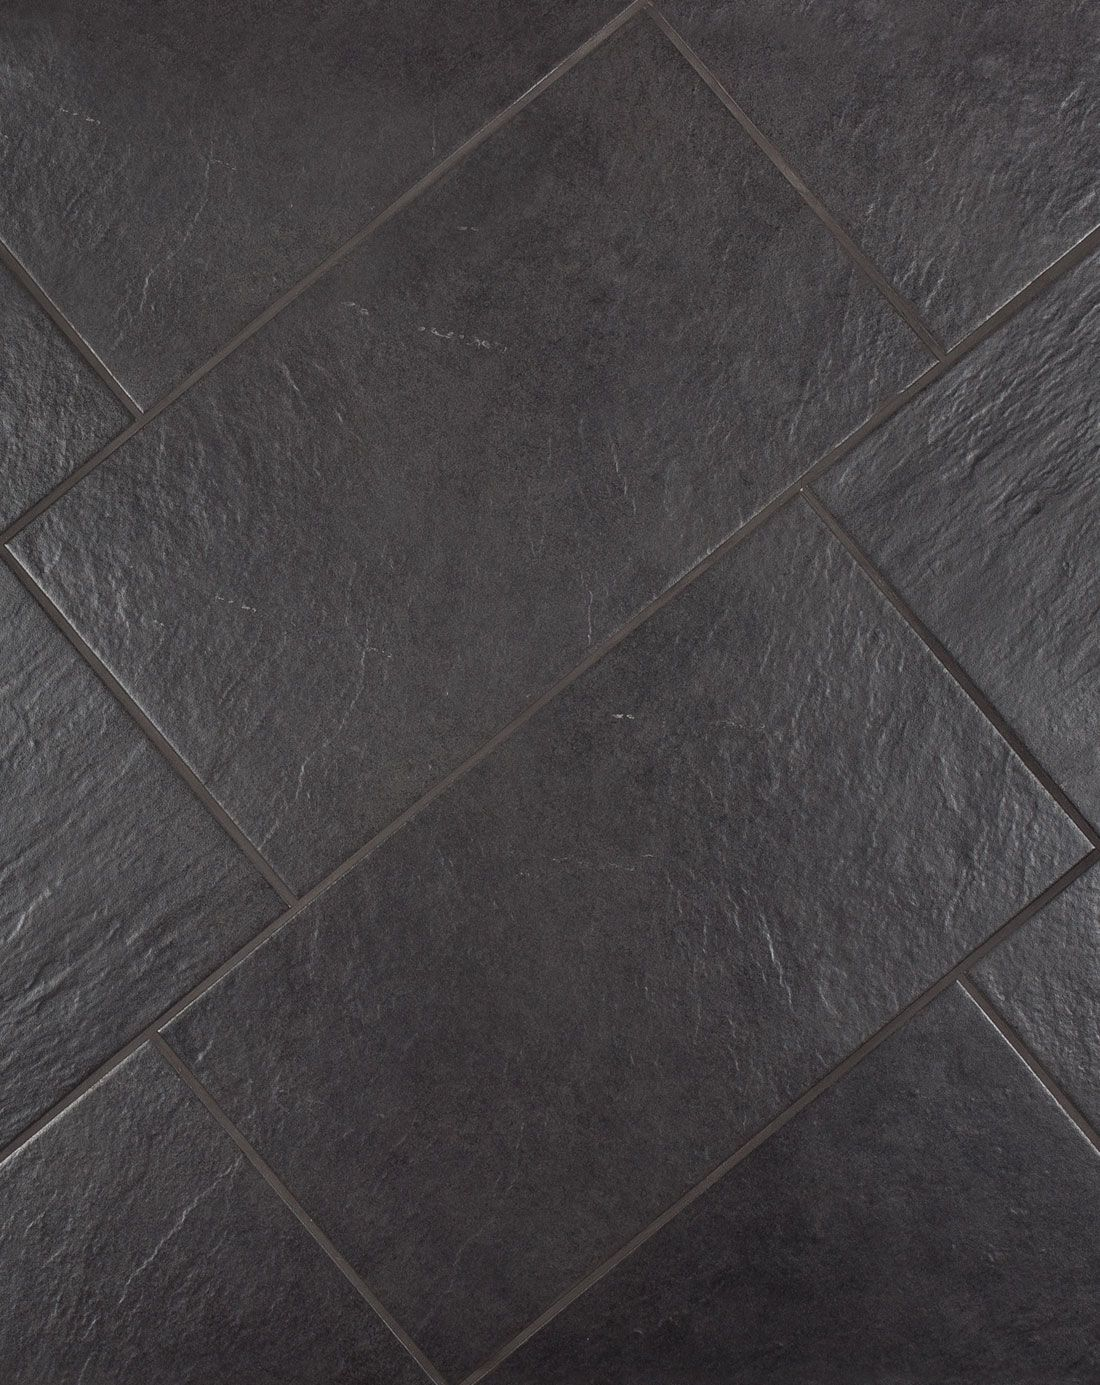 Quebec negro brick floor tiles a quality glazed porcelain tile with a quality glazed porcelain tile with a riven textured finish suitable for floor and wall use a stunning tile on any floor you can get free samples dailygadgetfo Image collections